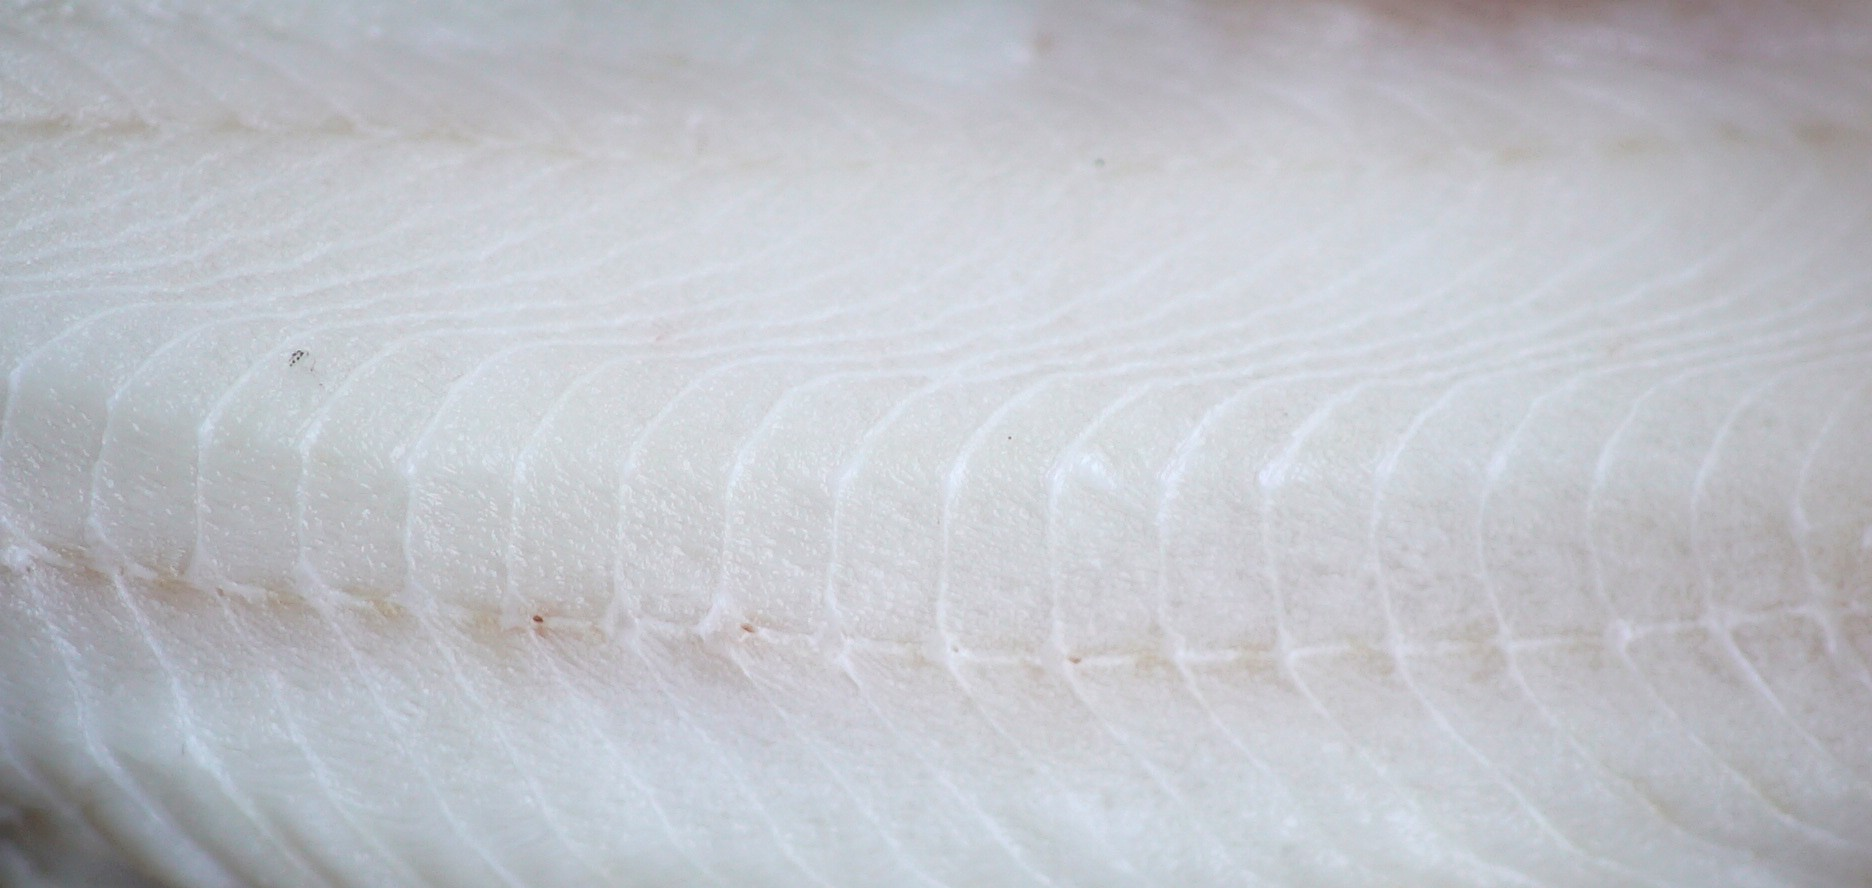 close-up of a sablefish fillet